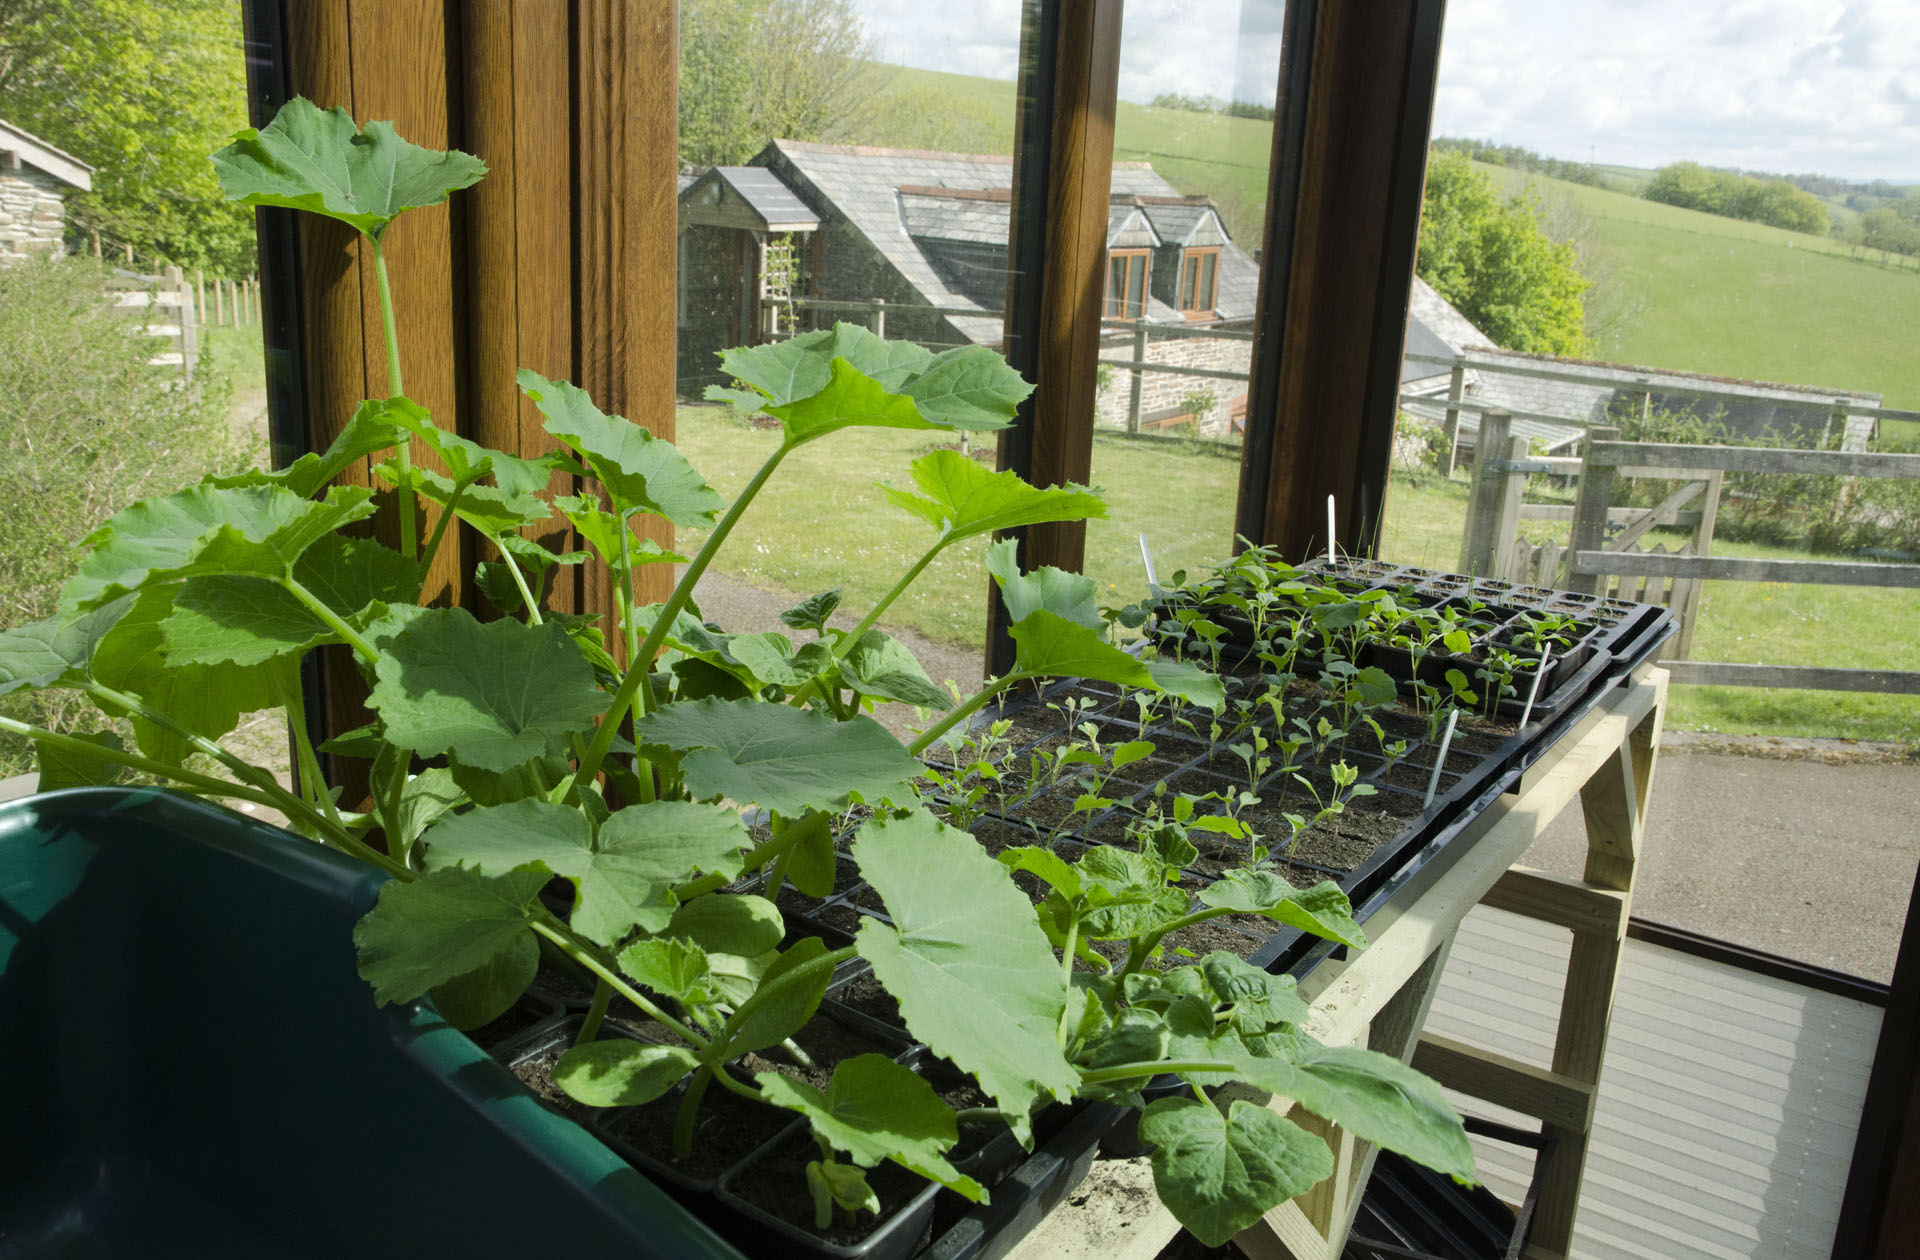 Seedlings and squash plants in conservatory